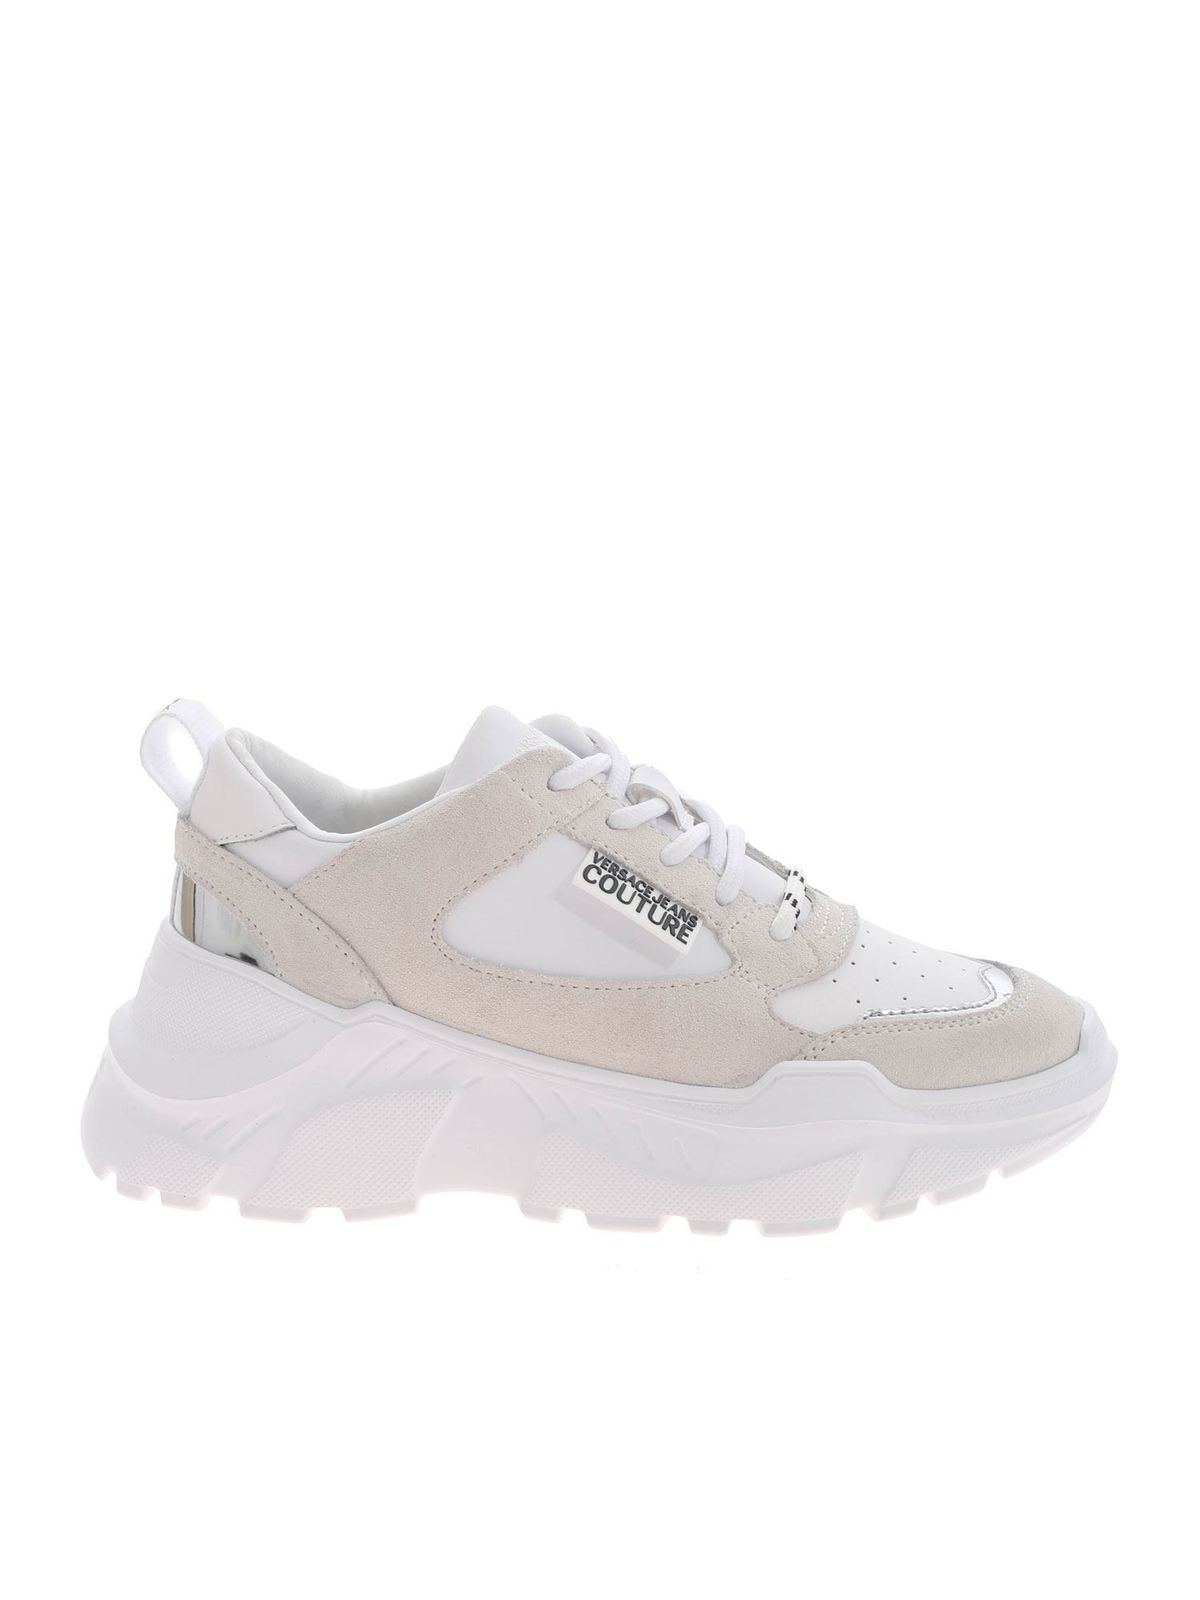 Versace Jeans Couture MIRRORED DETAILS SNEAKERS IN WHITE